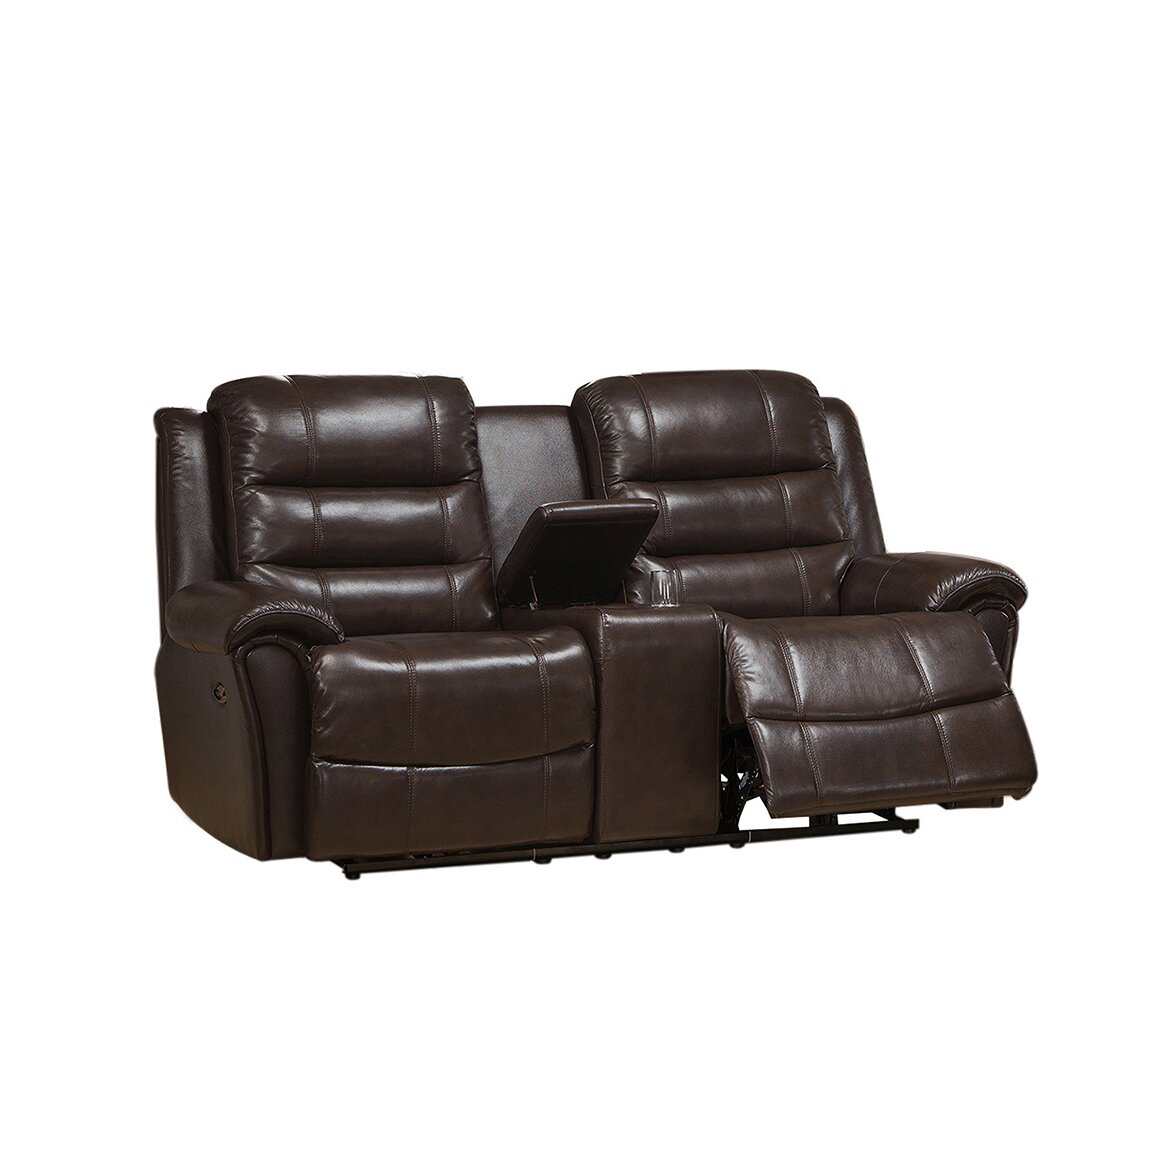 astoria leather recliner sofa and loveseat set wayfair